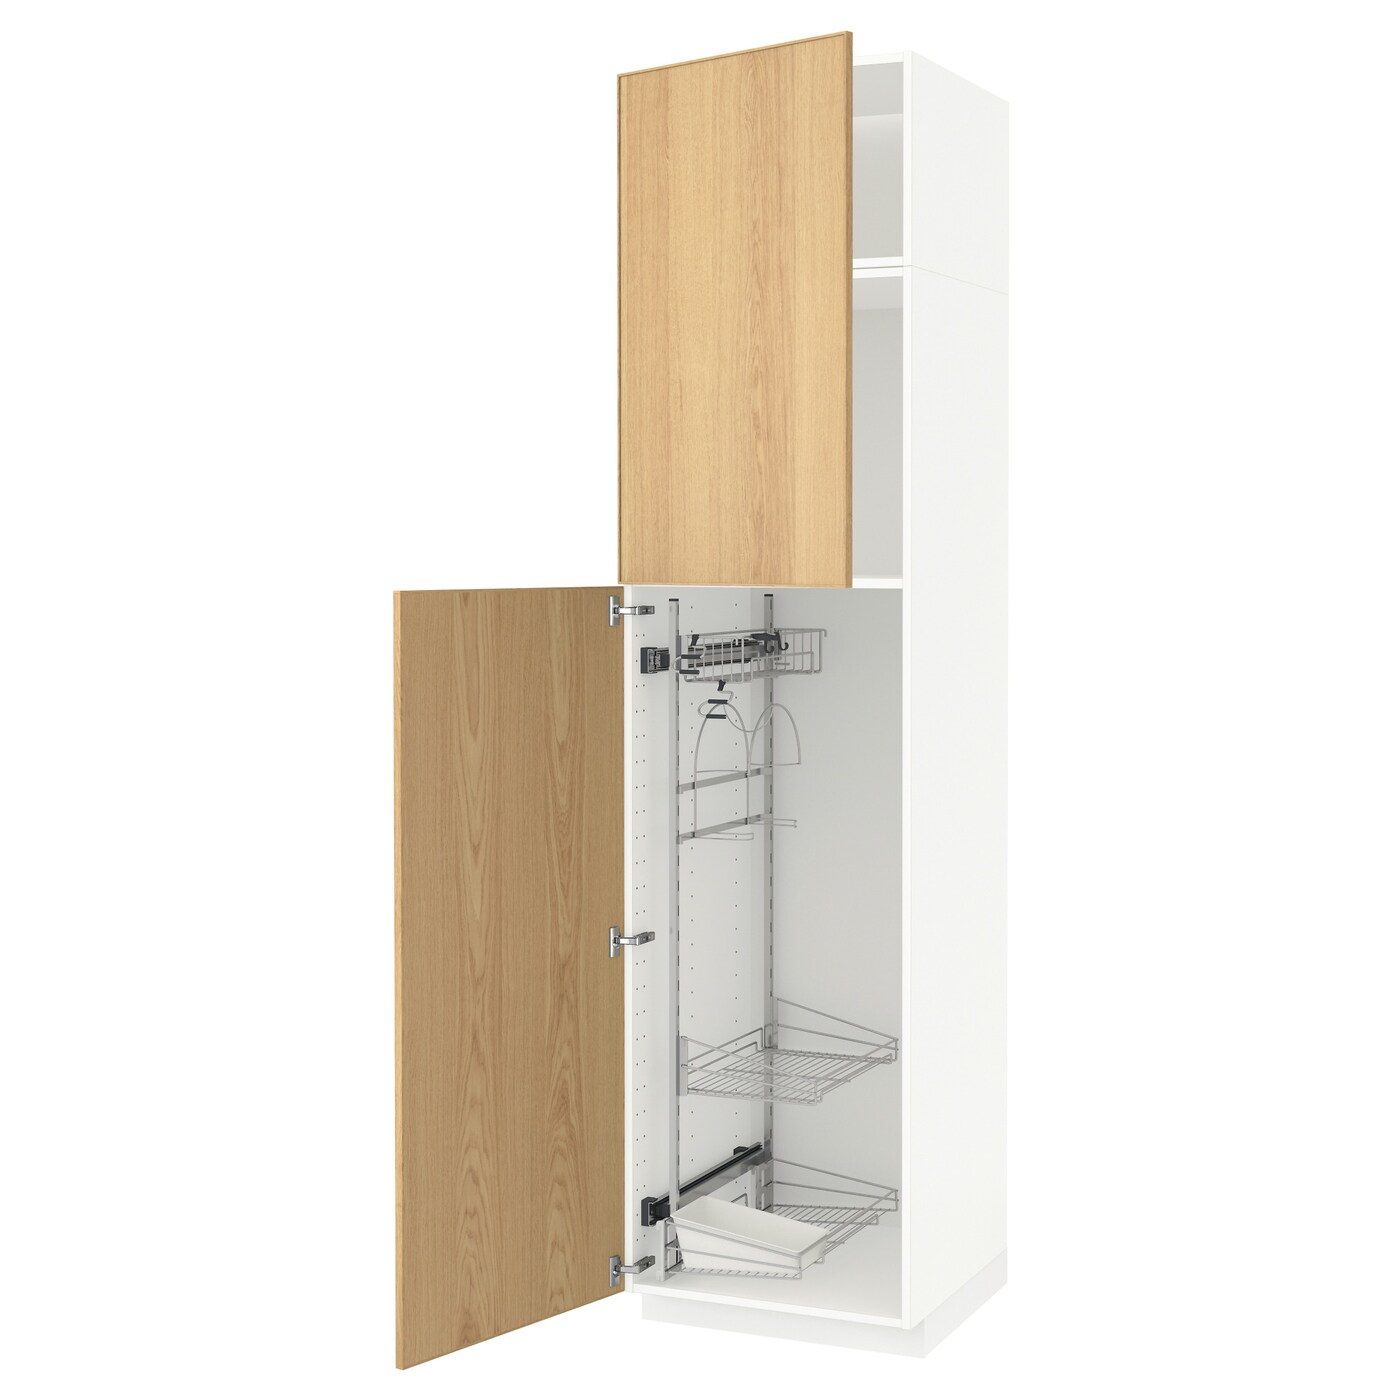 IKEA METOD high cabinet with cleaning interior Sturdy frame construction, 18 mm thick.